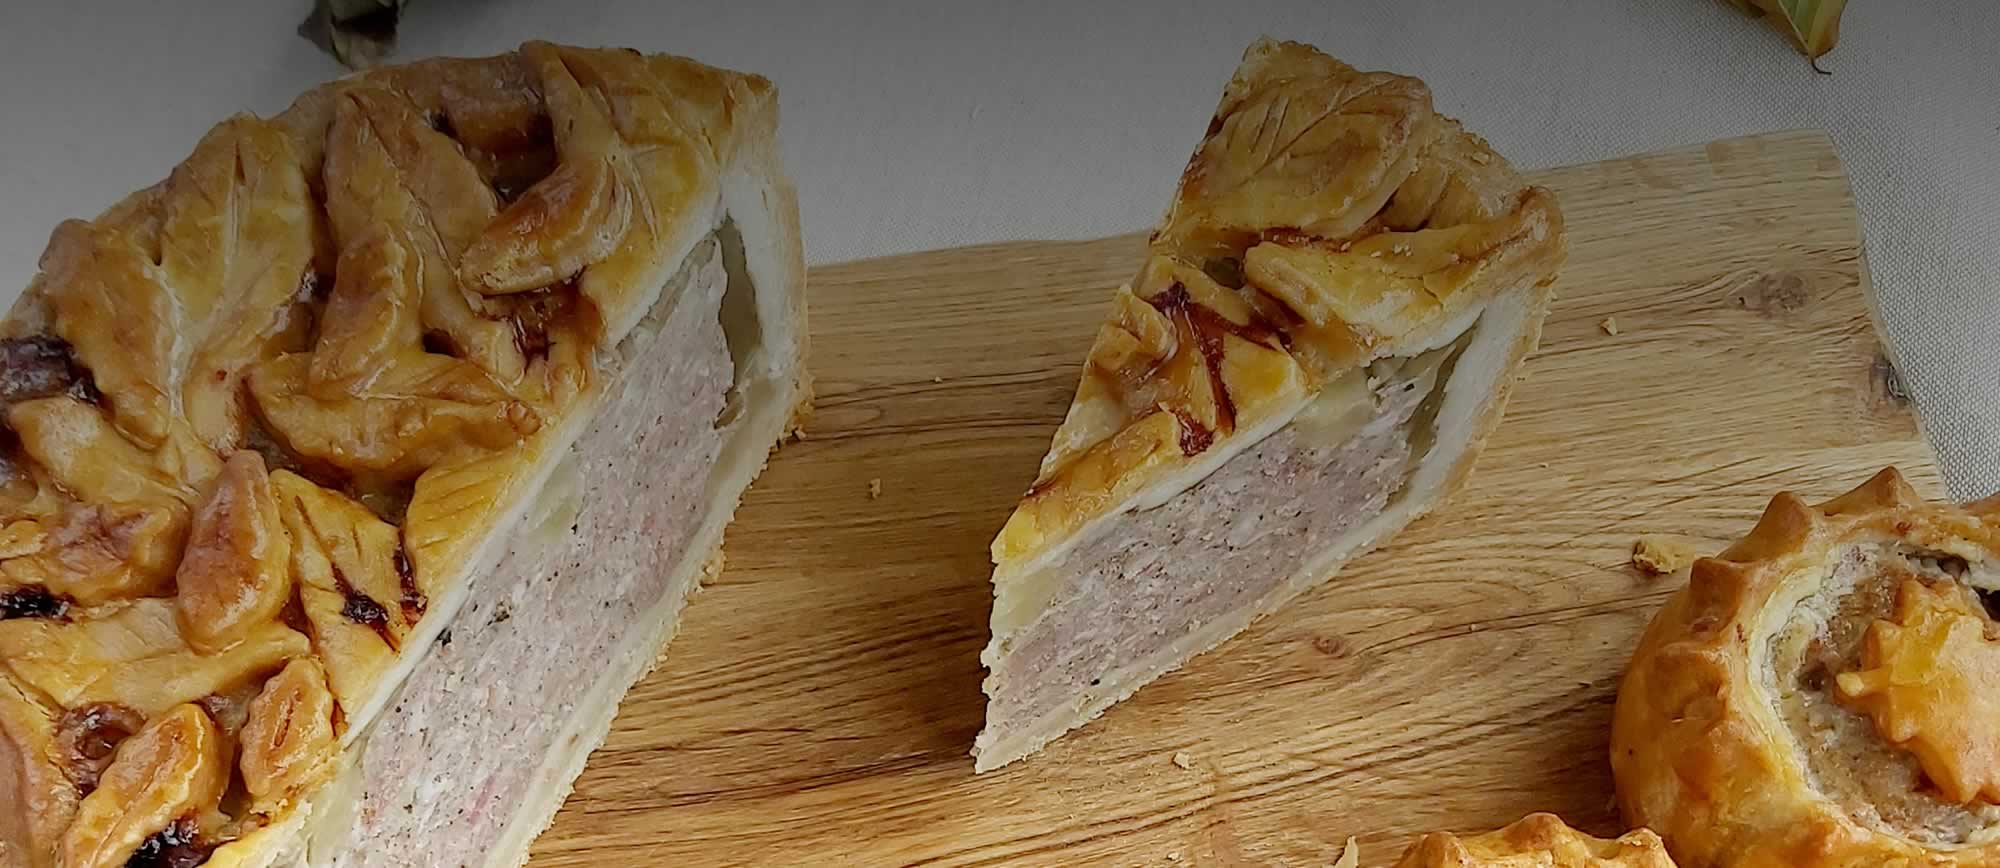 Pat's Pies - Hand raised in the Black Country